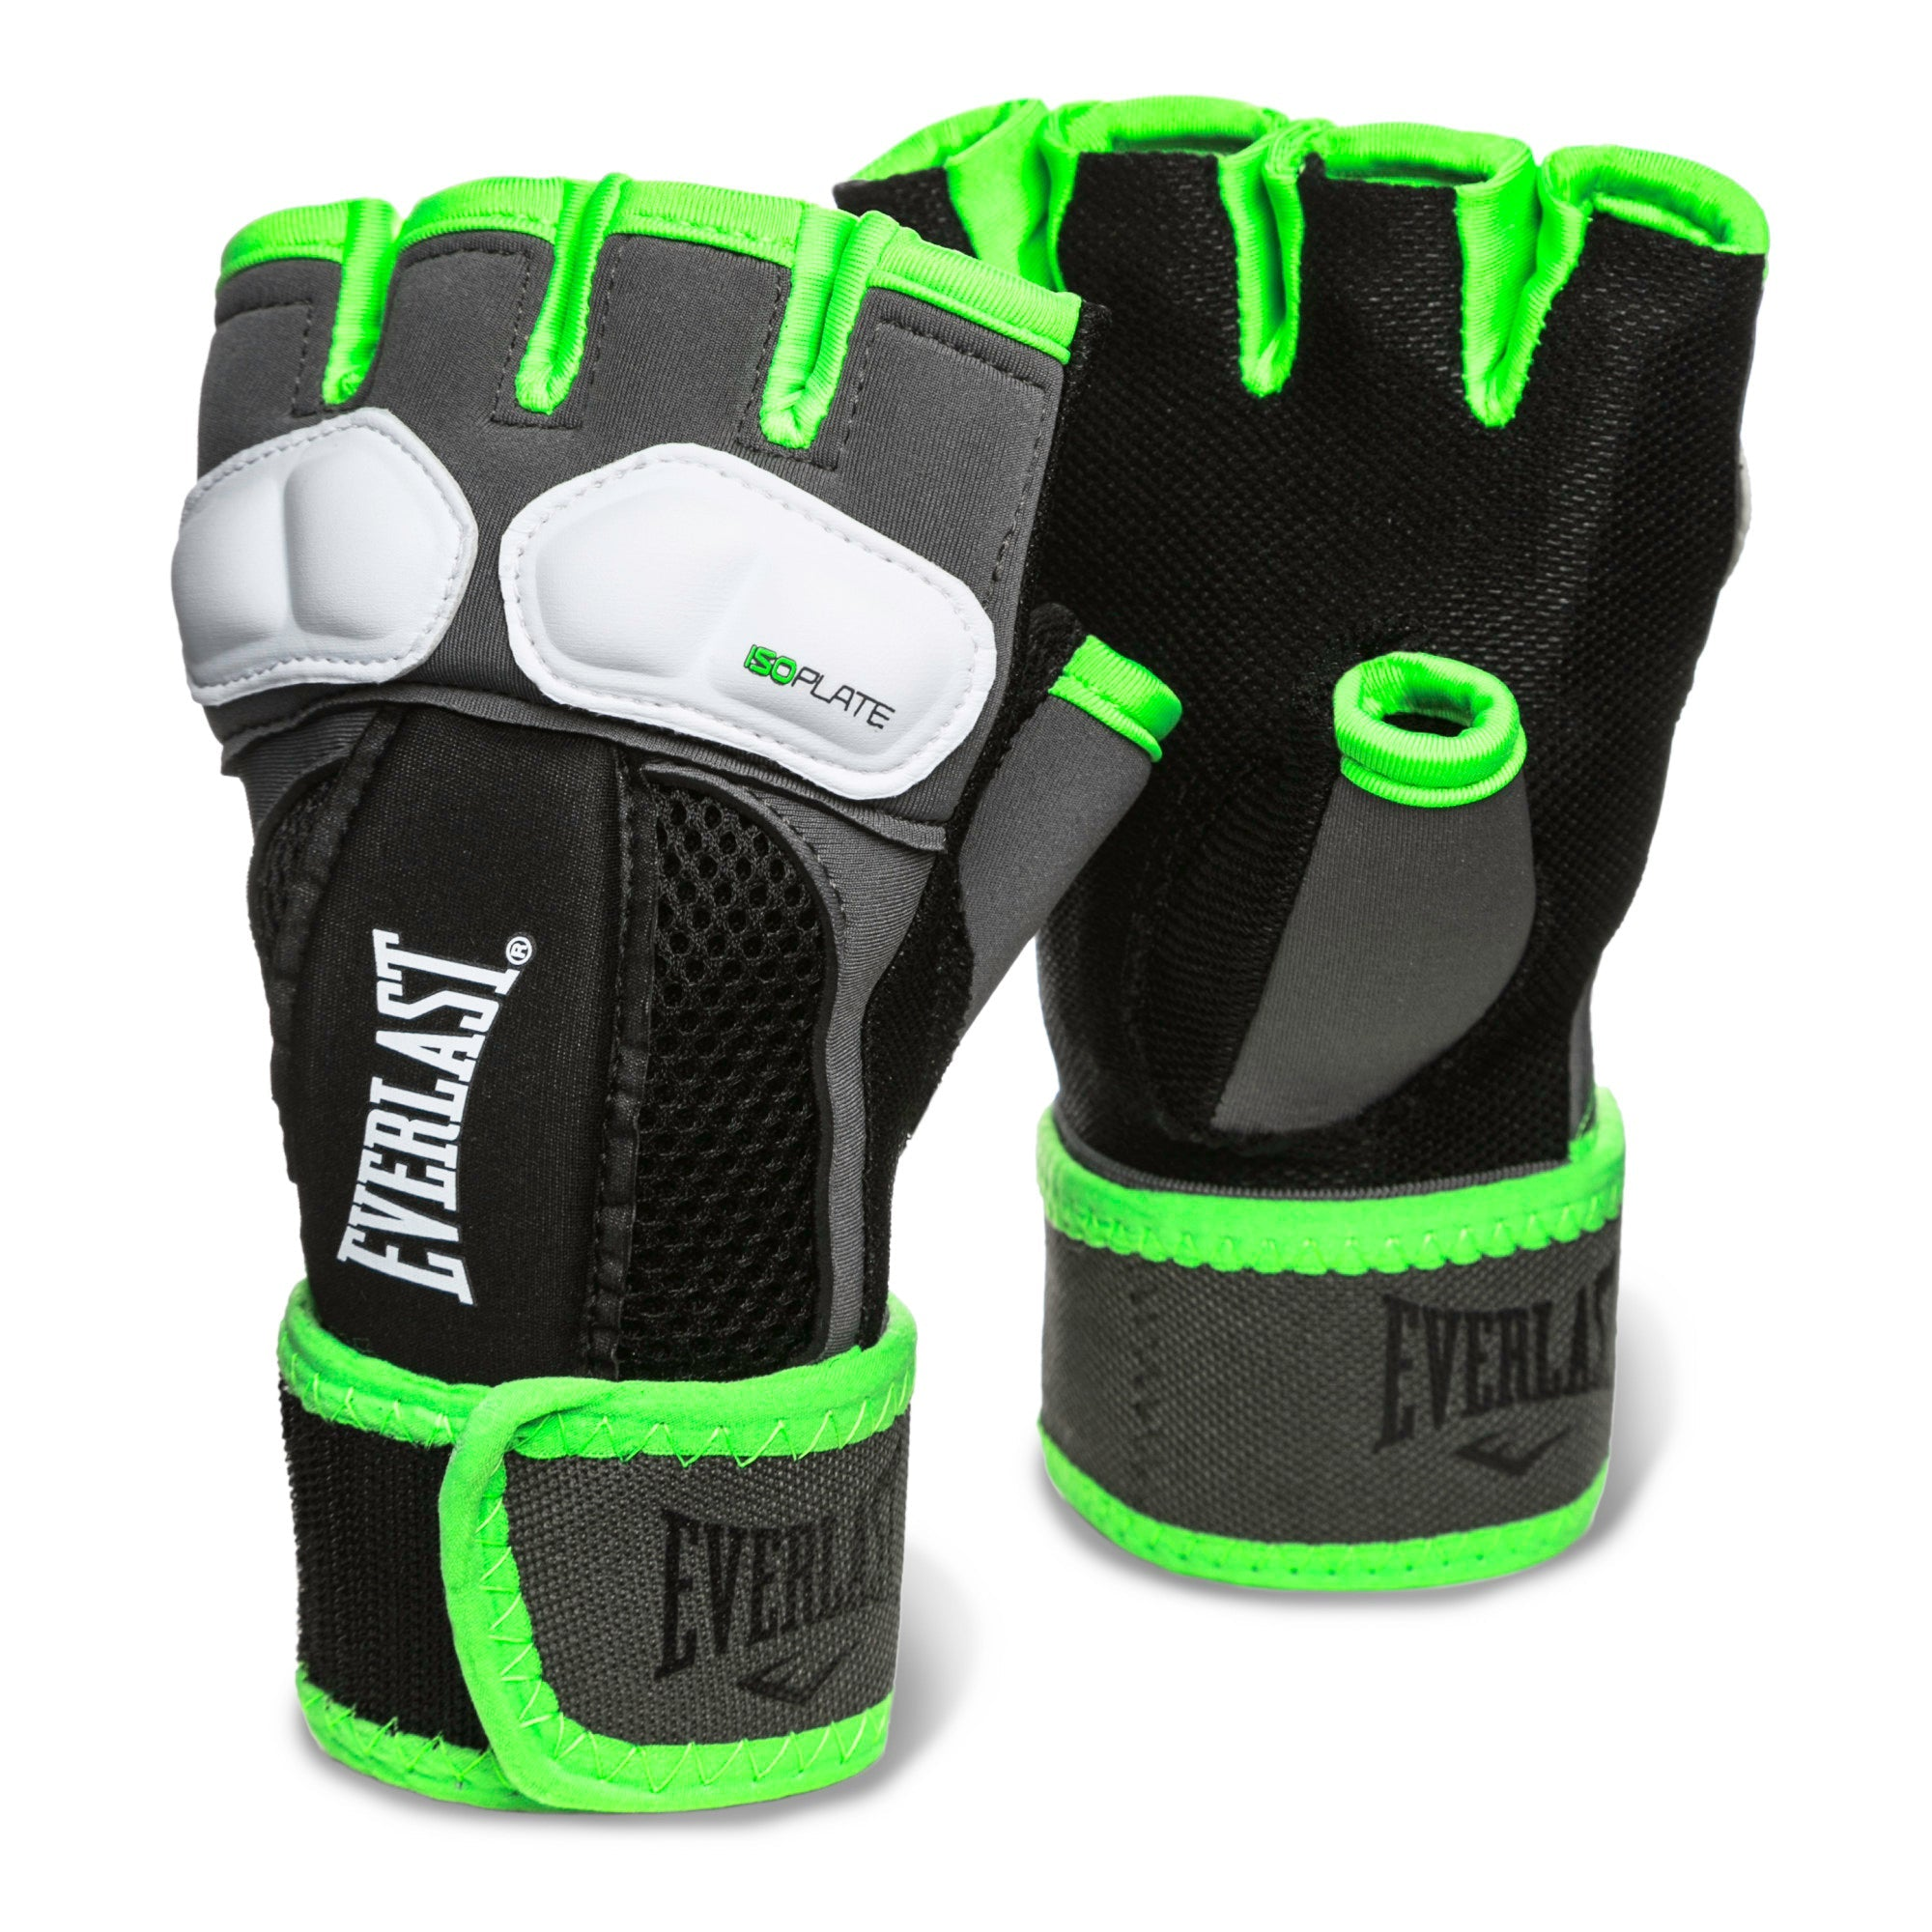 Everlast Primer Evergel Hand Wraps by Everlast Canada